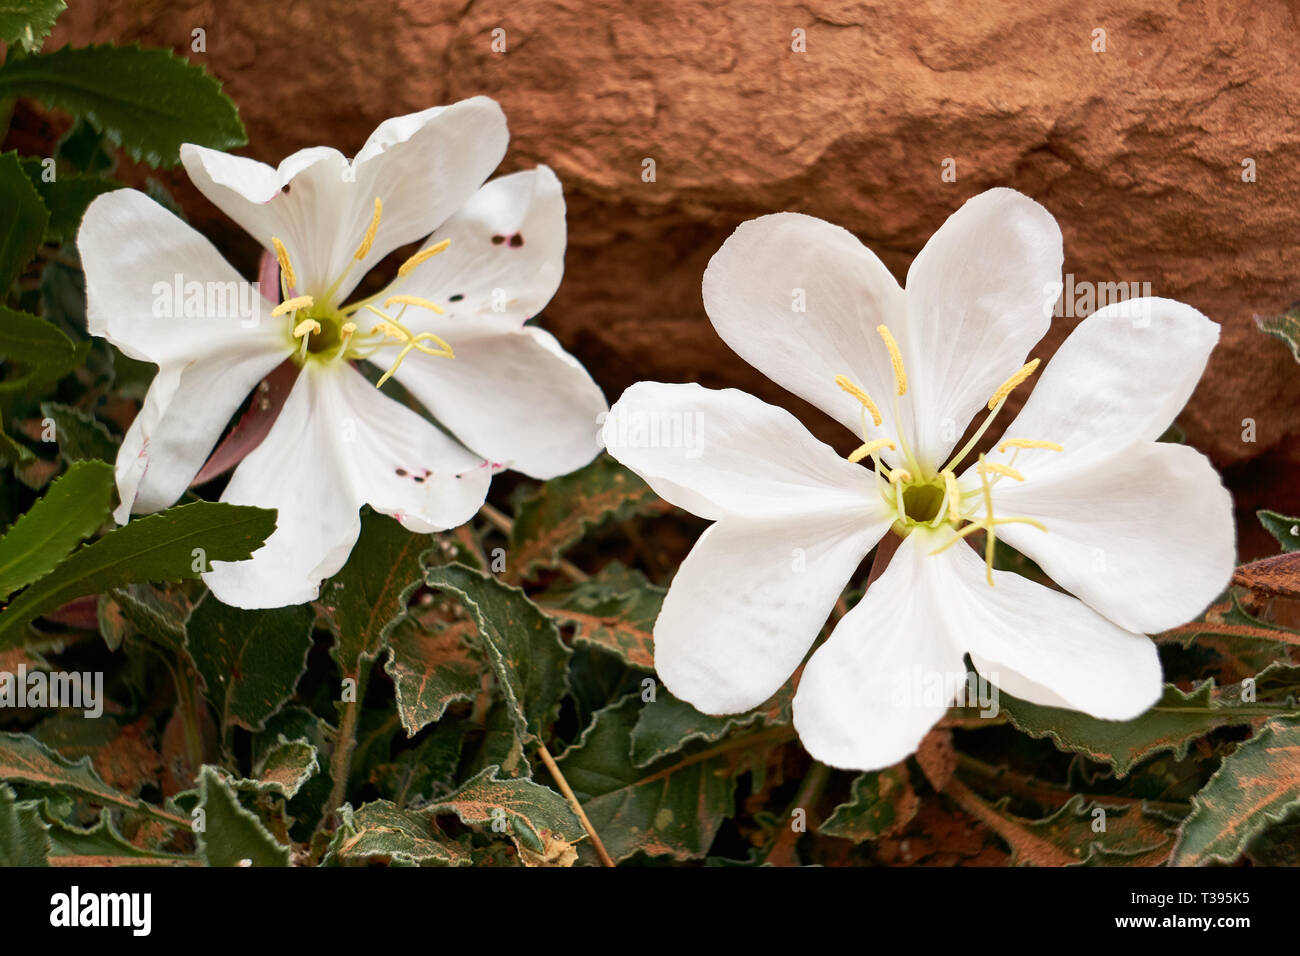 The white desert flower, Onagraceae Oenothera caespitosa, grows in the red earth of Arches National Park in Moab, Utah, USA. - Stock Image